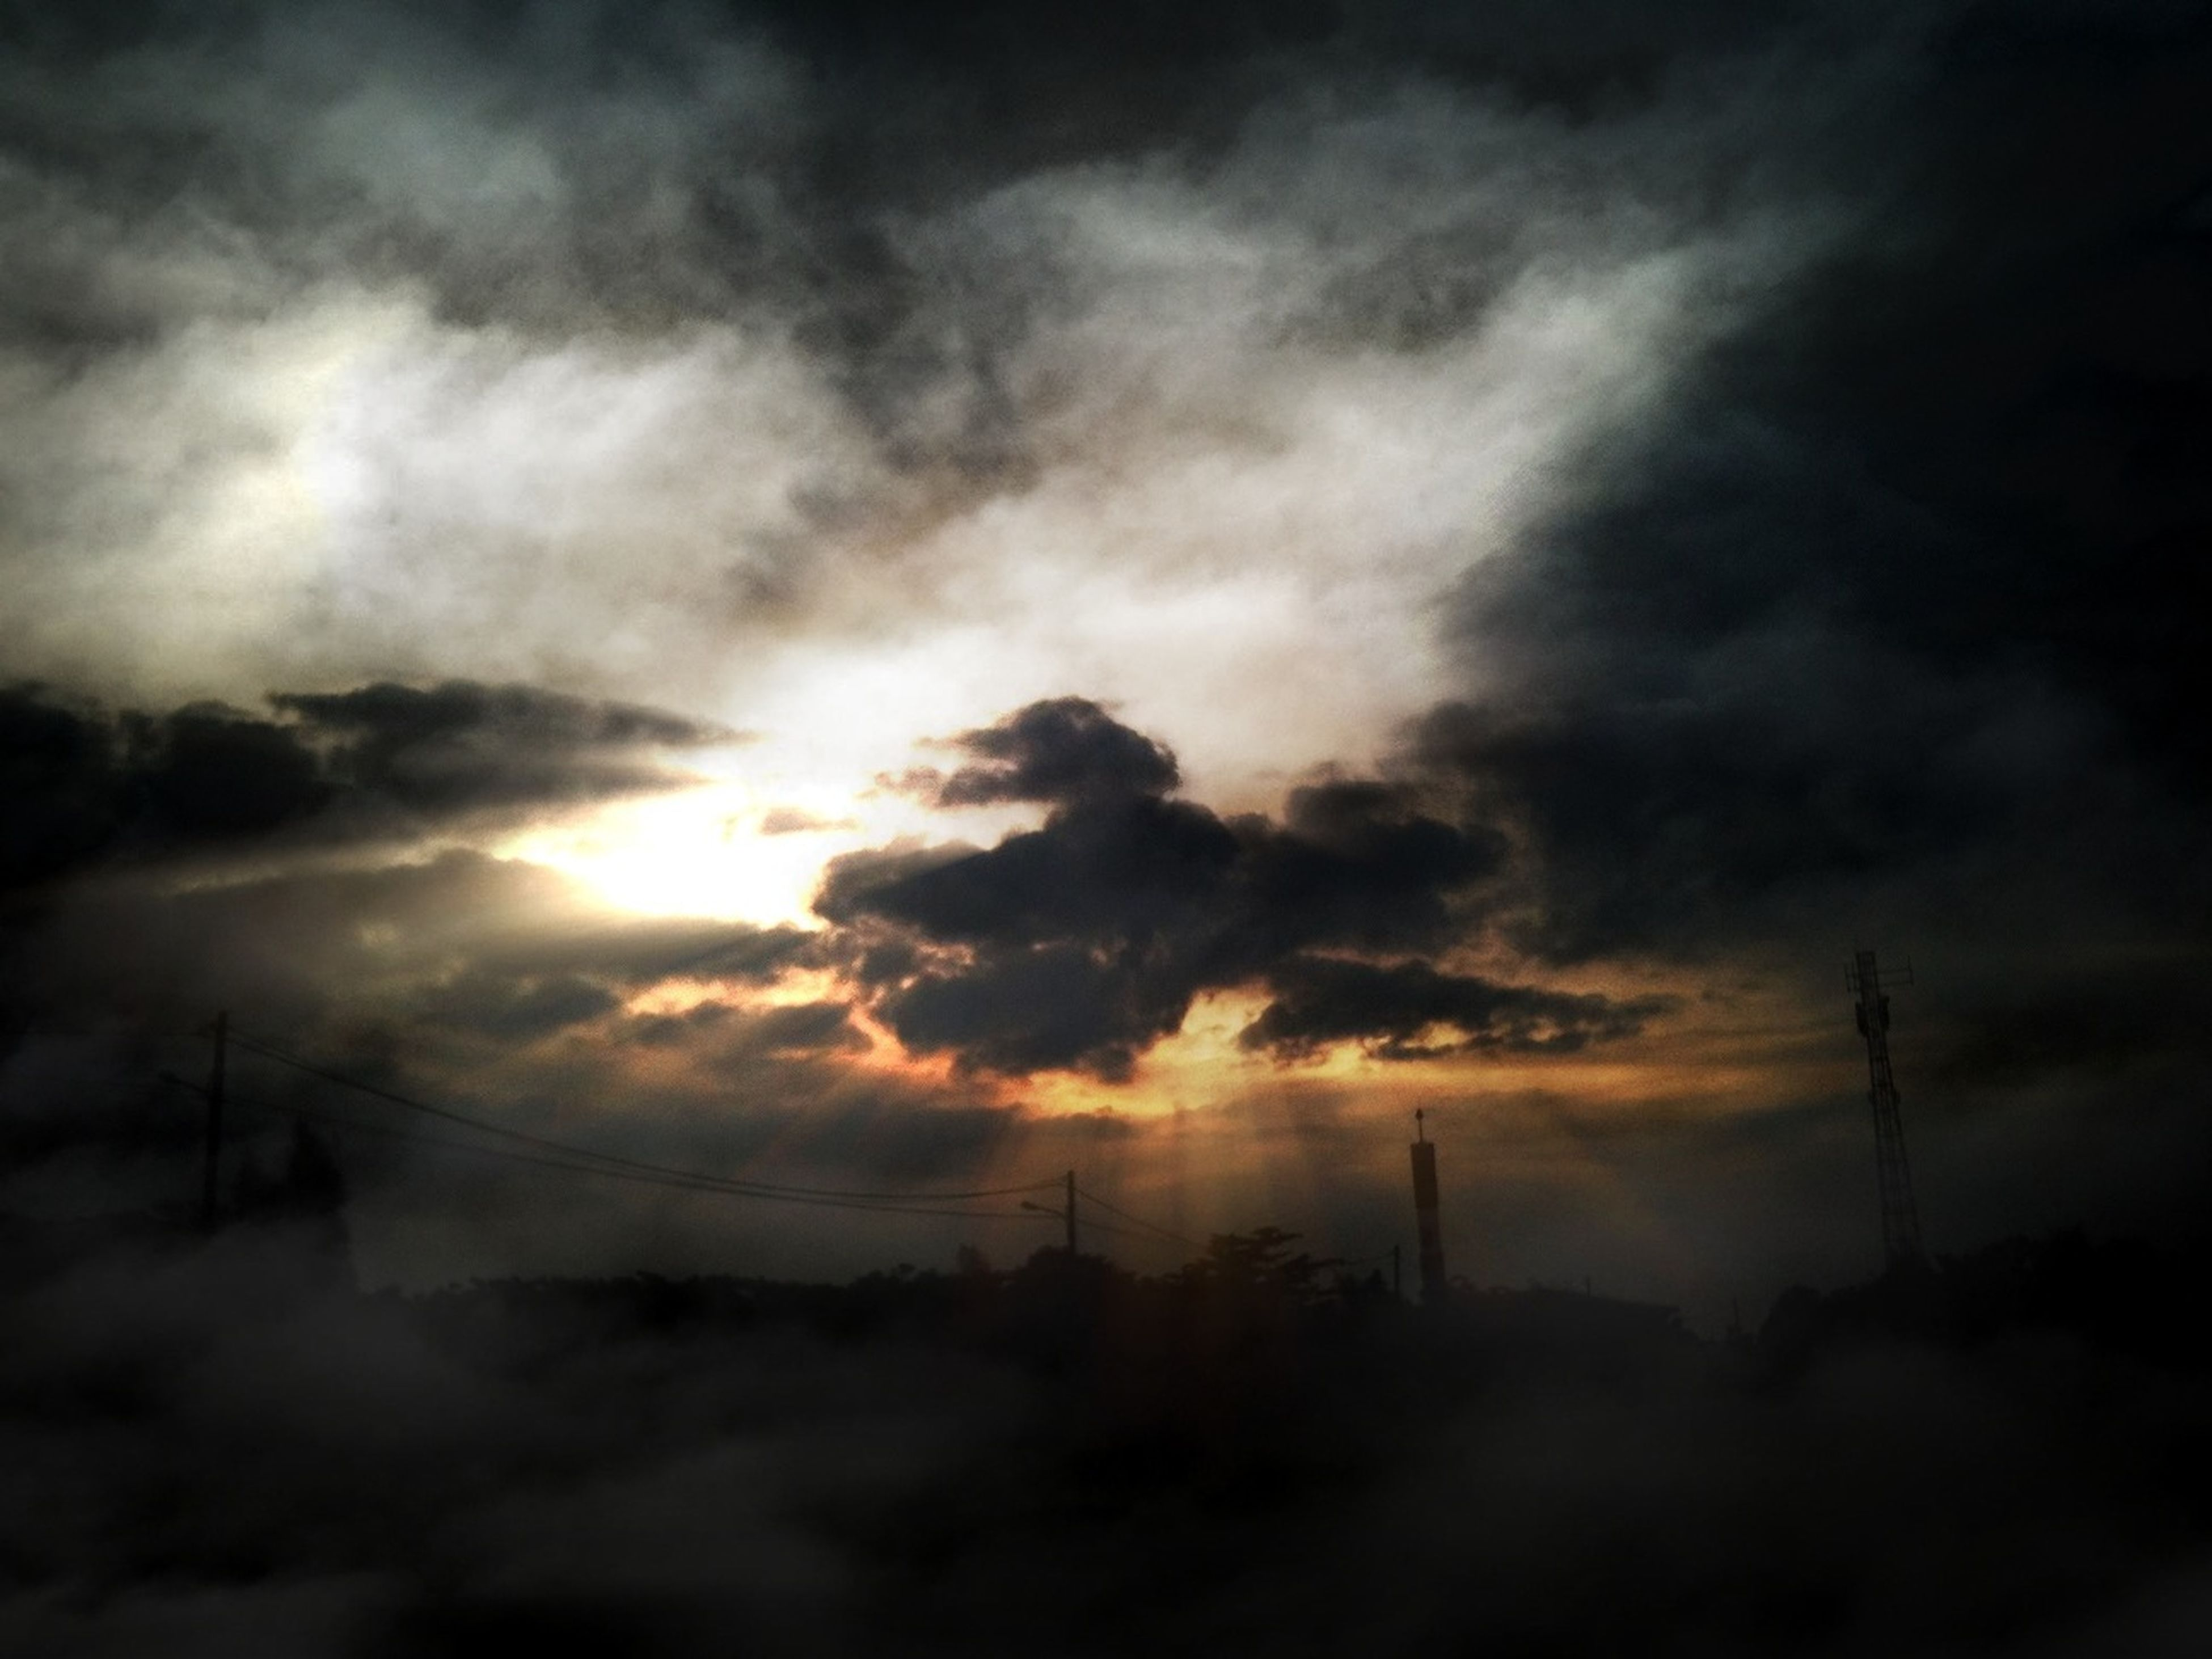 sky, cloud - sky, silhouette, sunset, fuel and power generation, cloudy, electricity pylon, tranquility, tranquil scene, beauty in nature, electricity, scenics, weather, nature, low angle view, power line, power supply, technology, cloud, dramatic sky